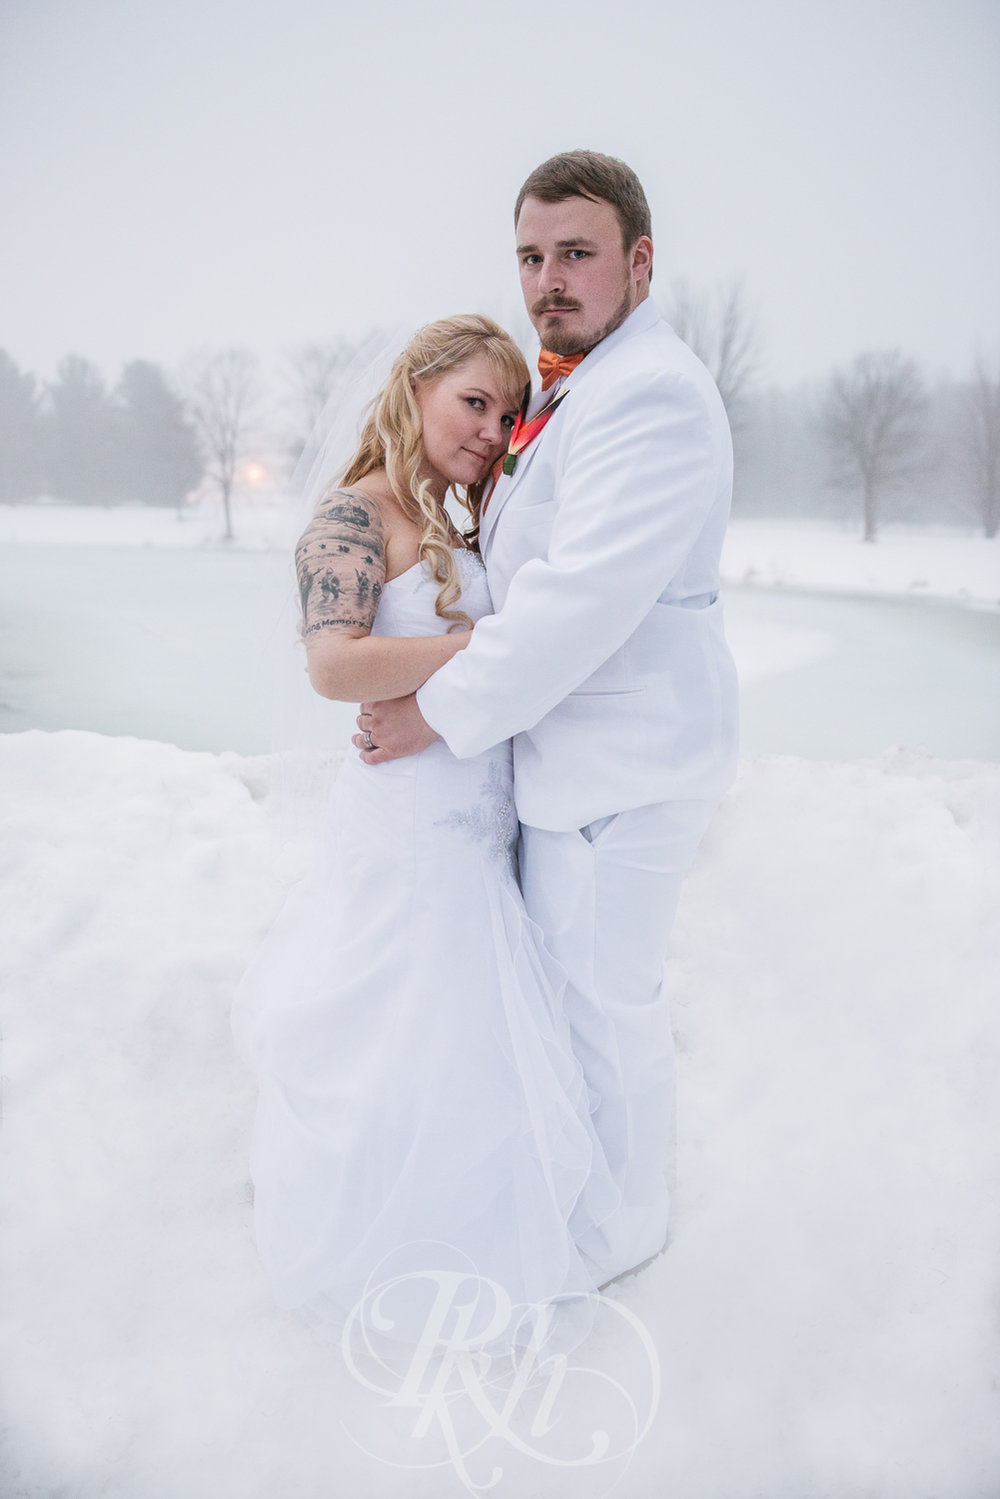 Krystal & Josh - Wisconsin Winter Wedding  Photography - RKH Images -22.jpg